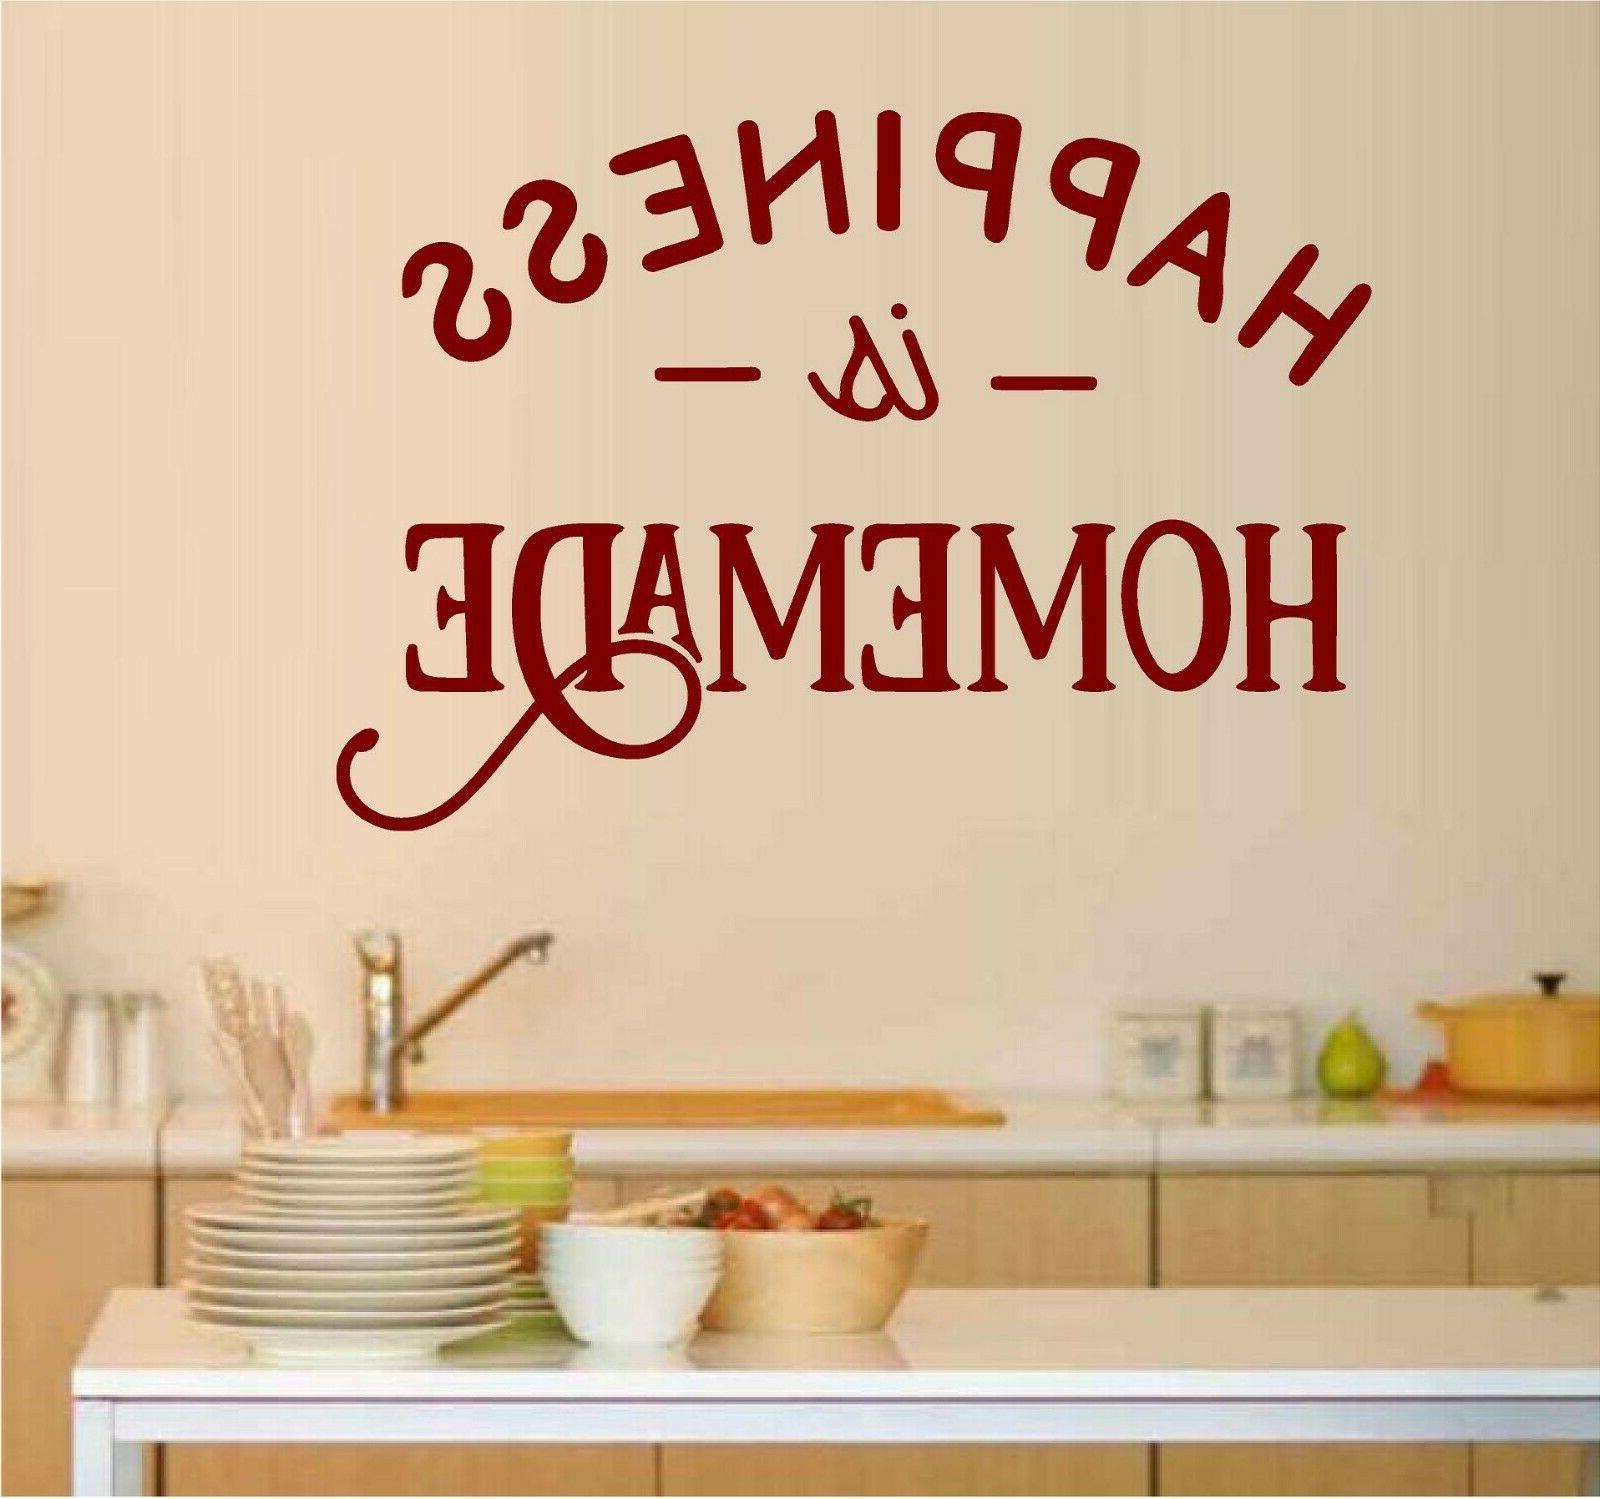 Happiness Kitchen Decal Sticker Home